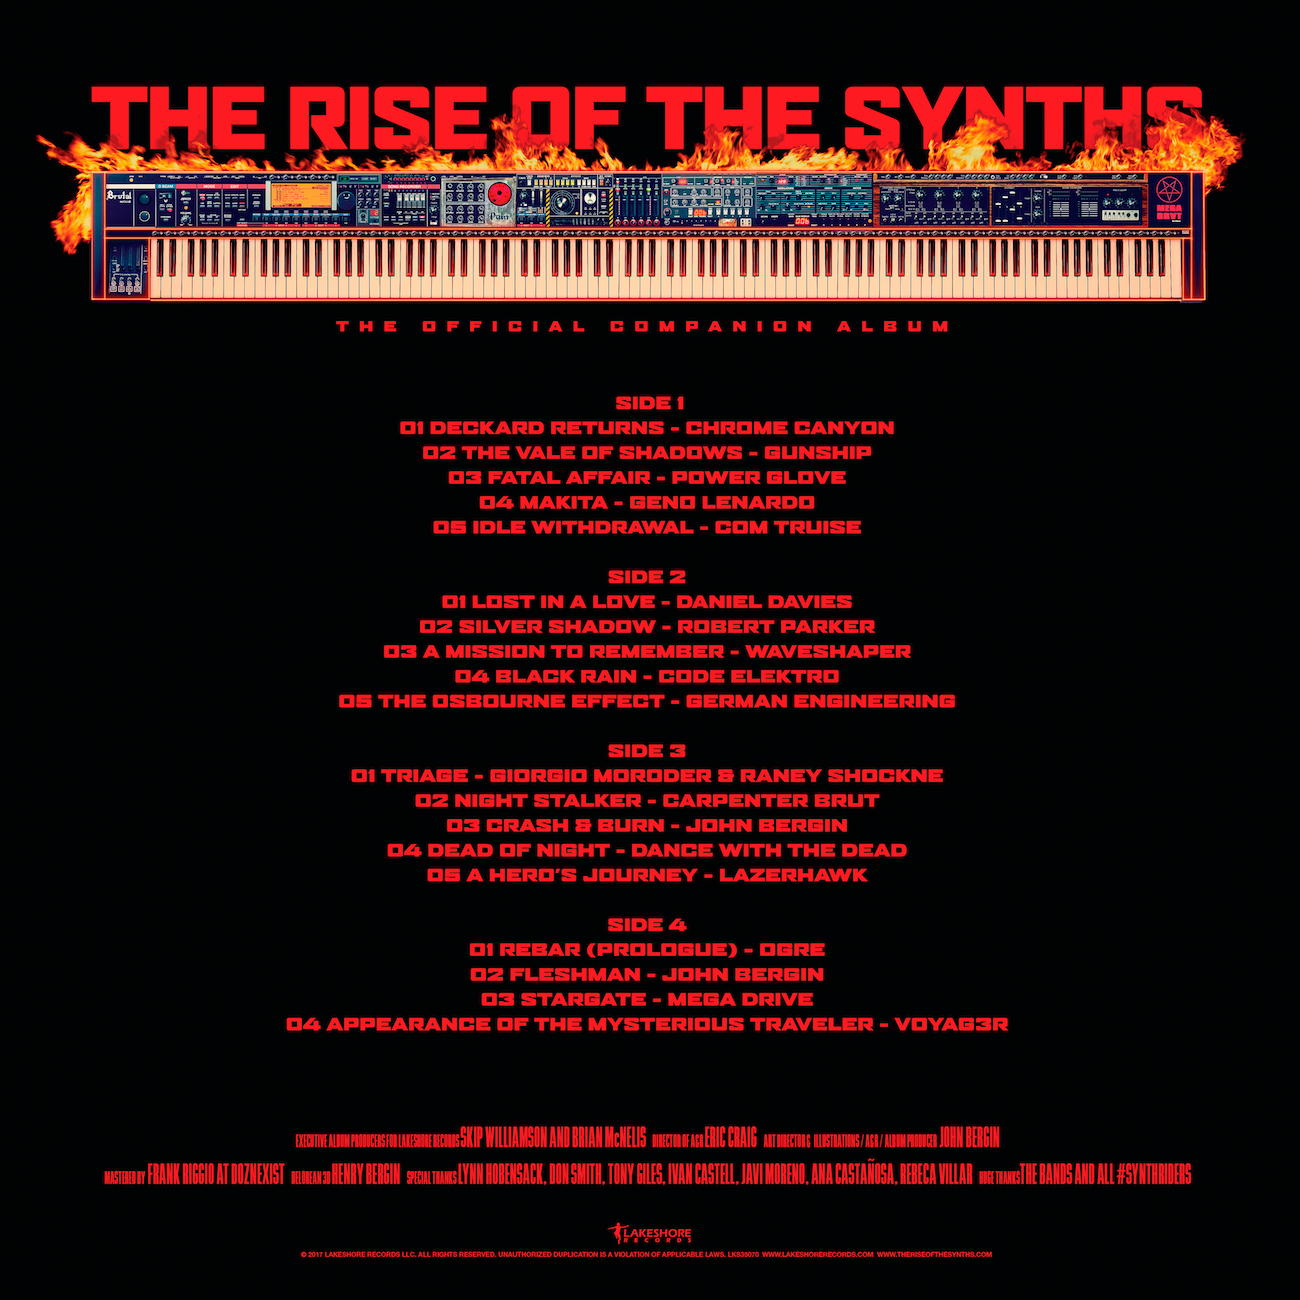 The Rise of the Synths Vinyl Companion Album: Pre-Order It Now